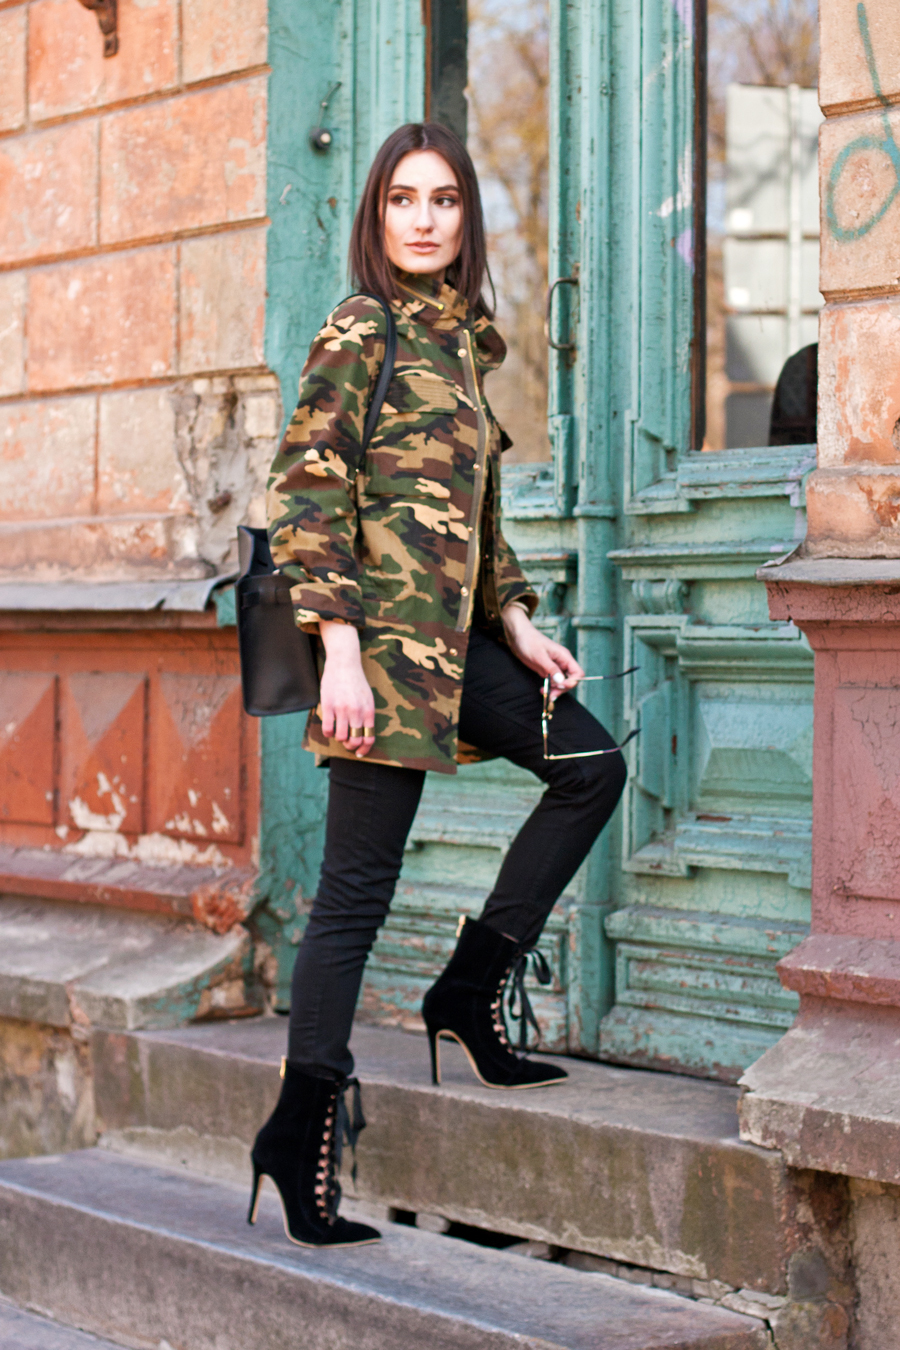 Camo Jacket and Lace Up Boots